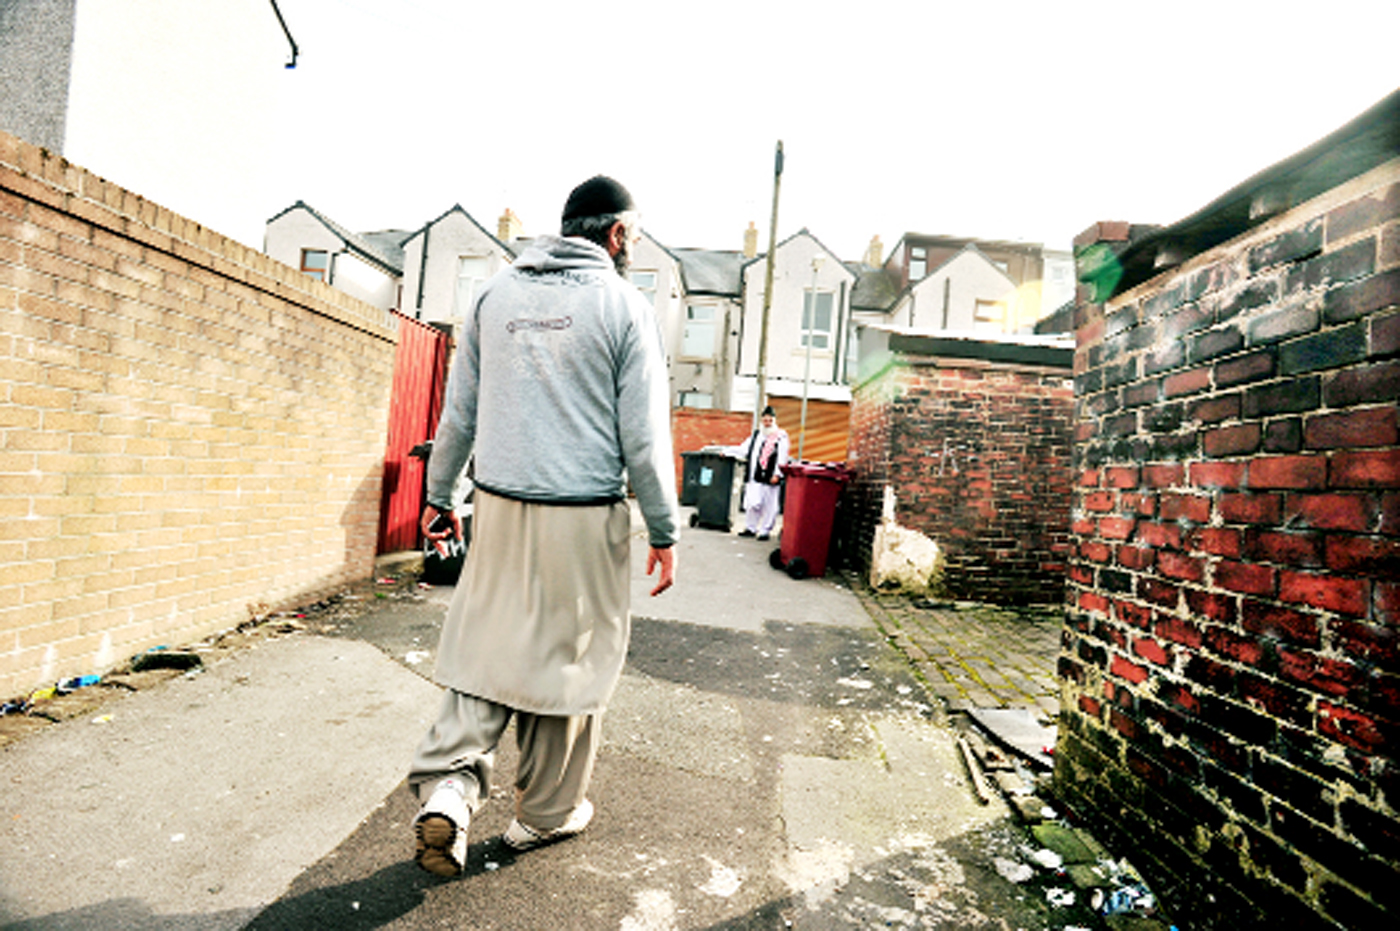 Mr Hussain in the alley where he is asking for gates